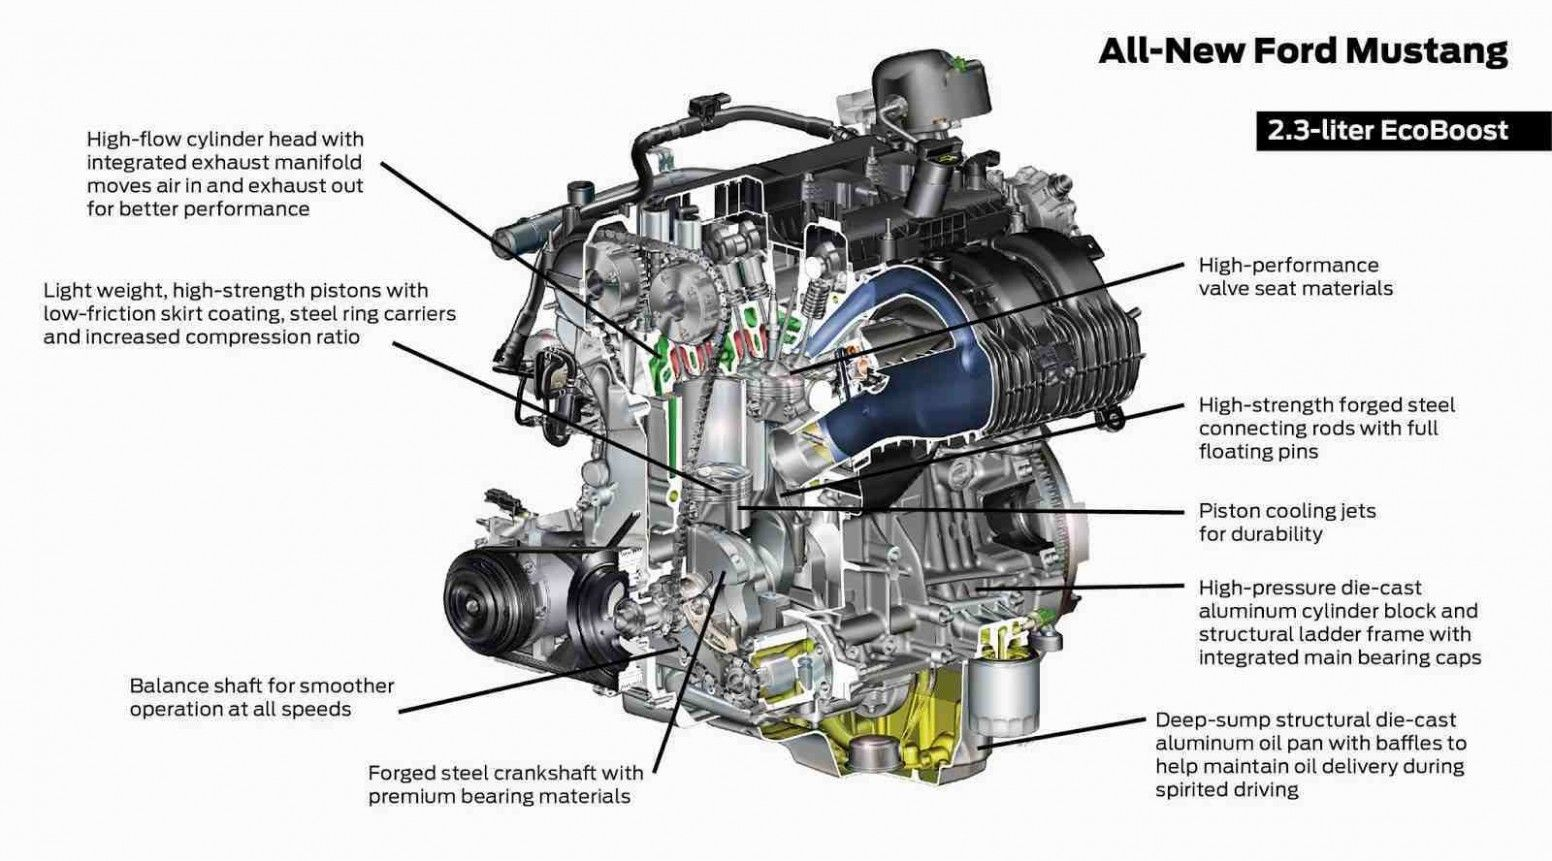 Ford Focus St Engine Diagram | New ford mustang, Ford mustang, 2015 ford  mustangPinterest